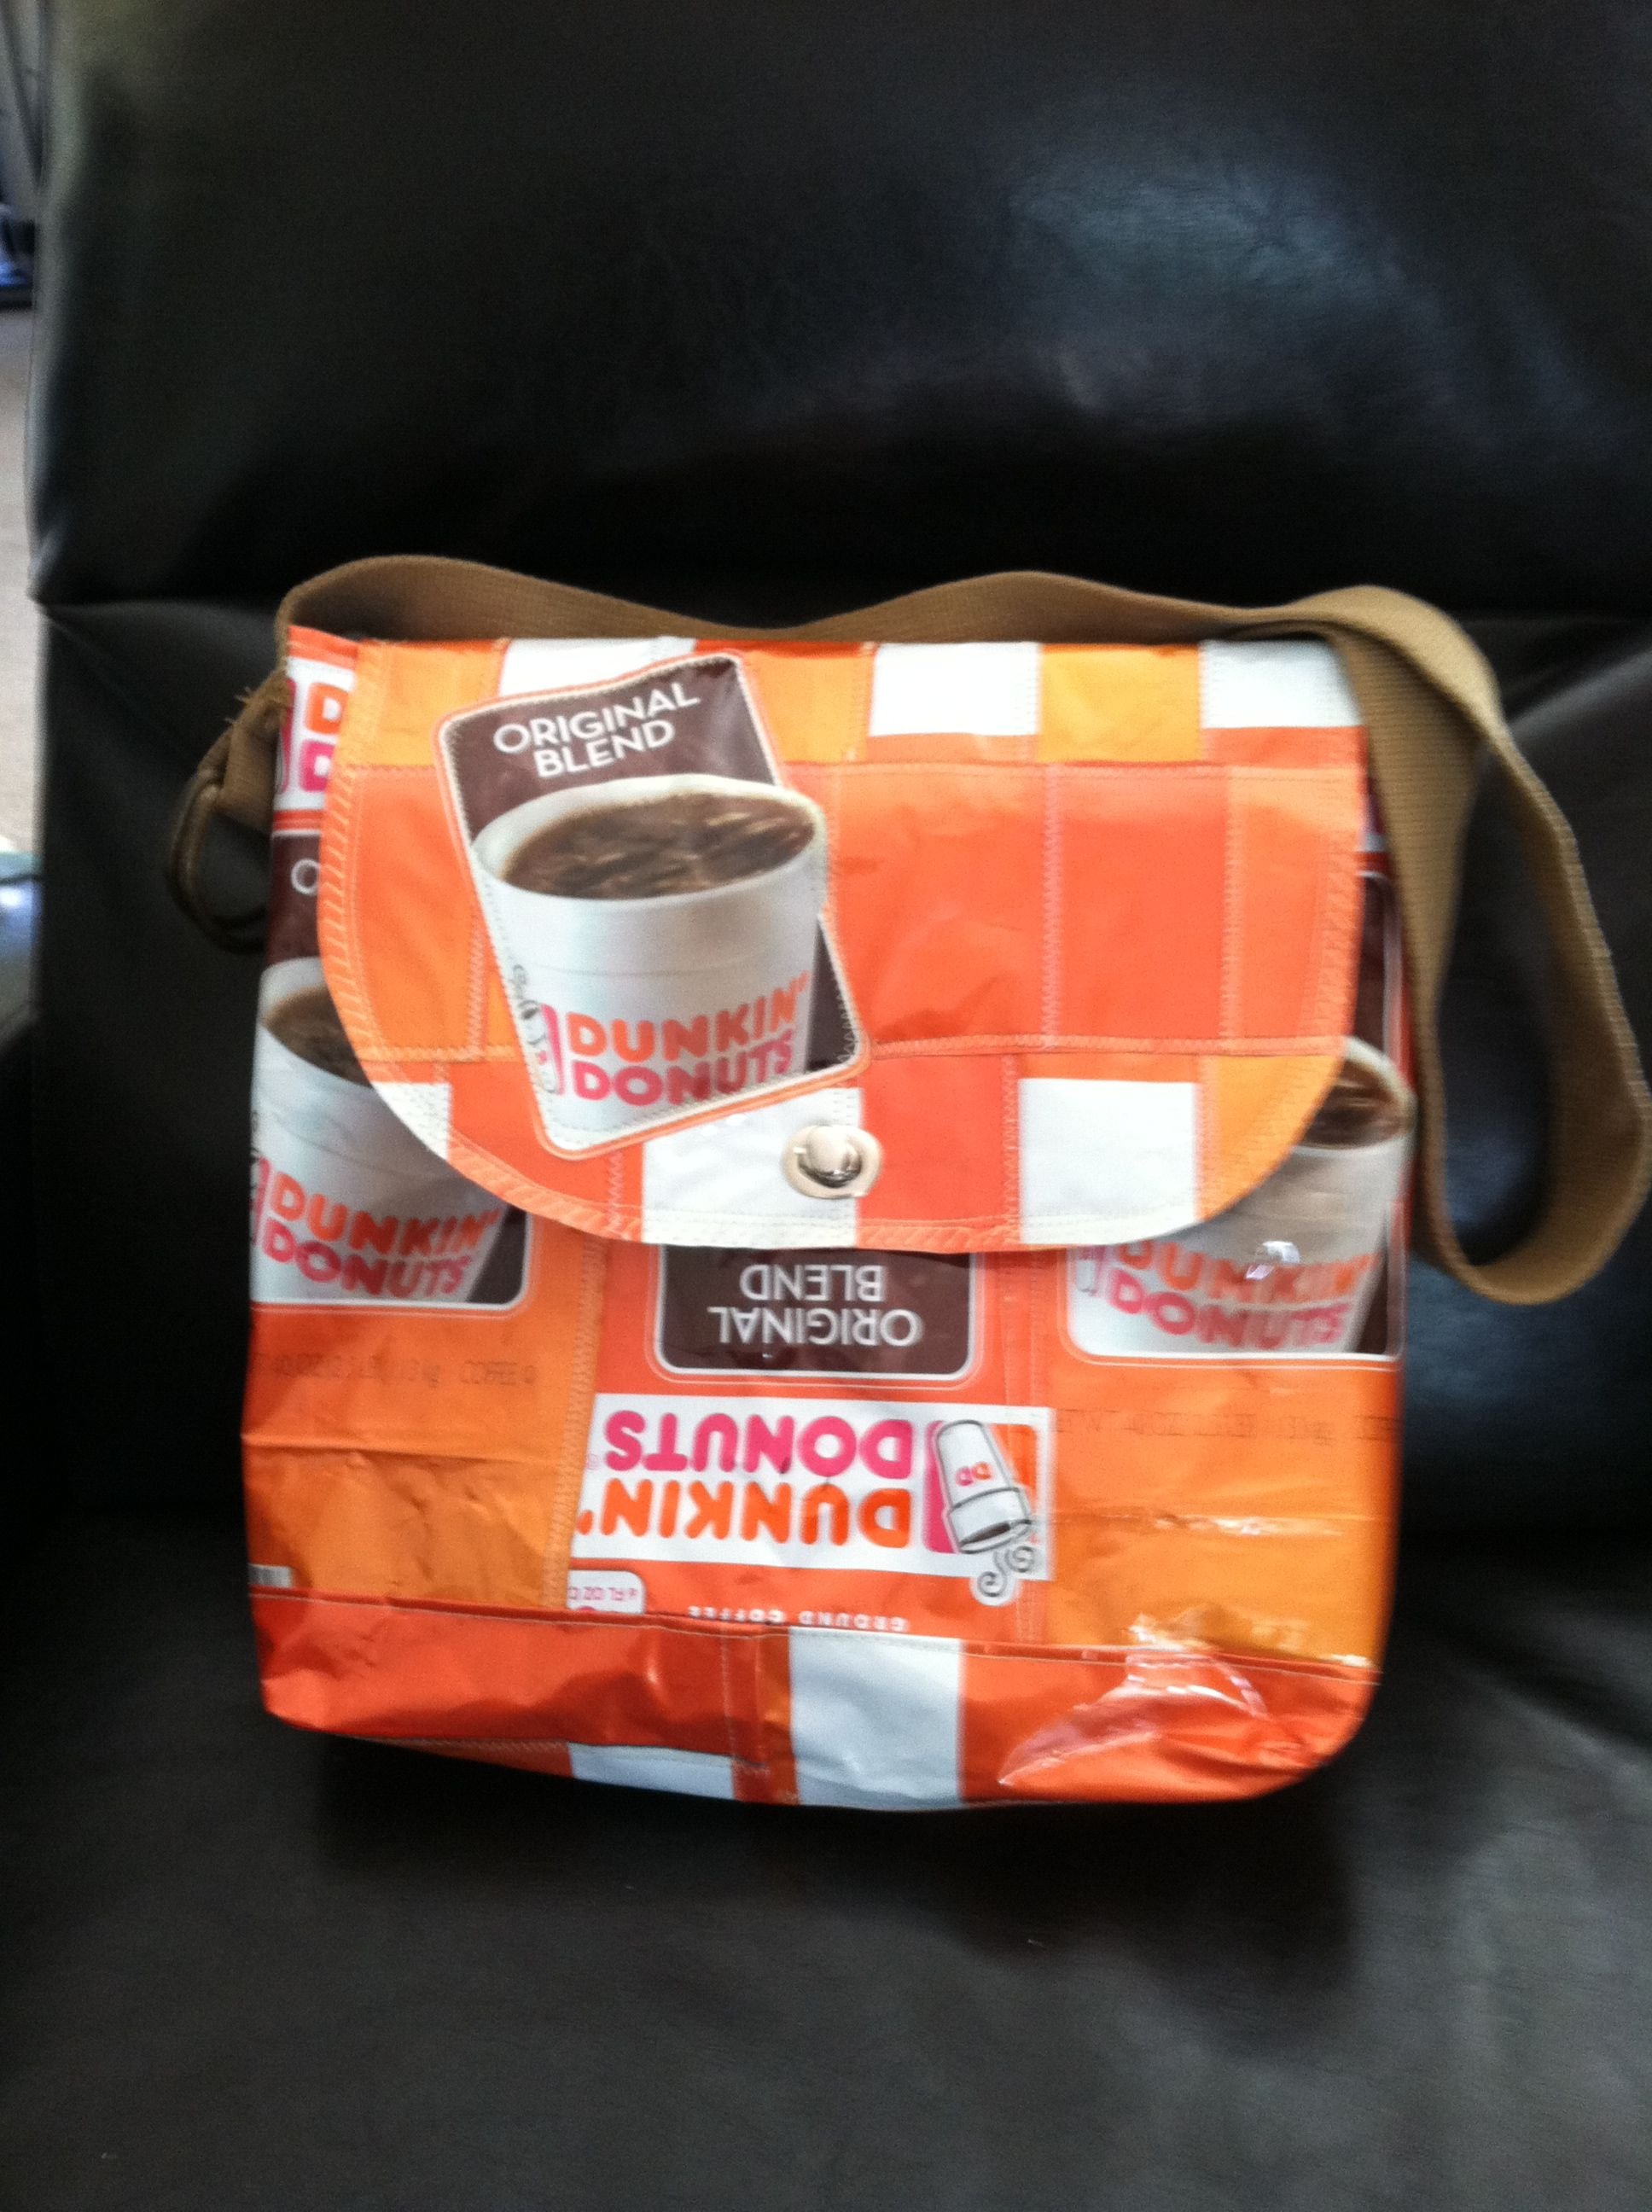 Cool Coffee Purse Made From Recycled Dunkin Donuts Bags All Materials Are  Collected And Sewn